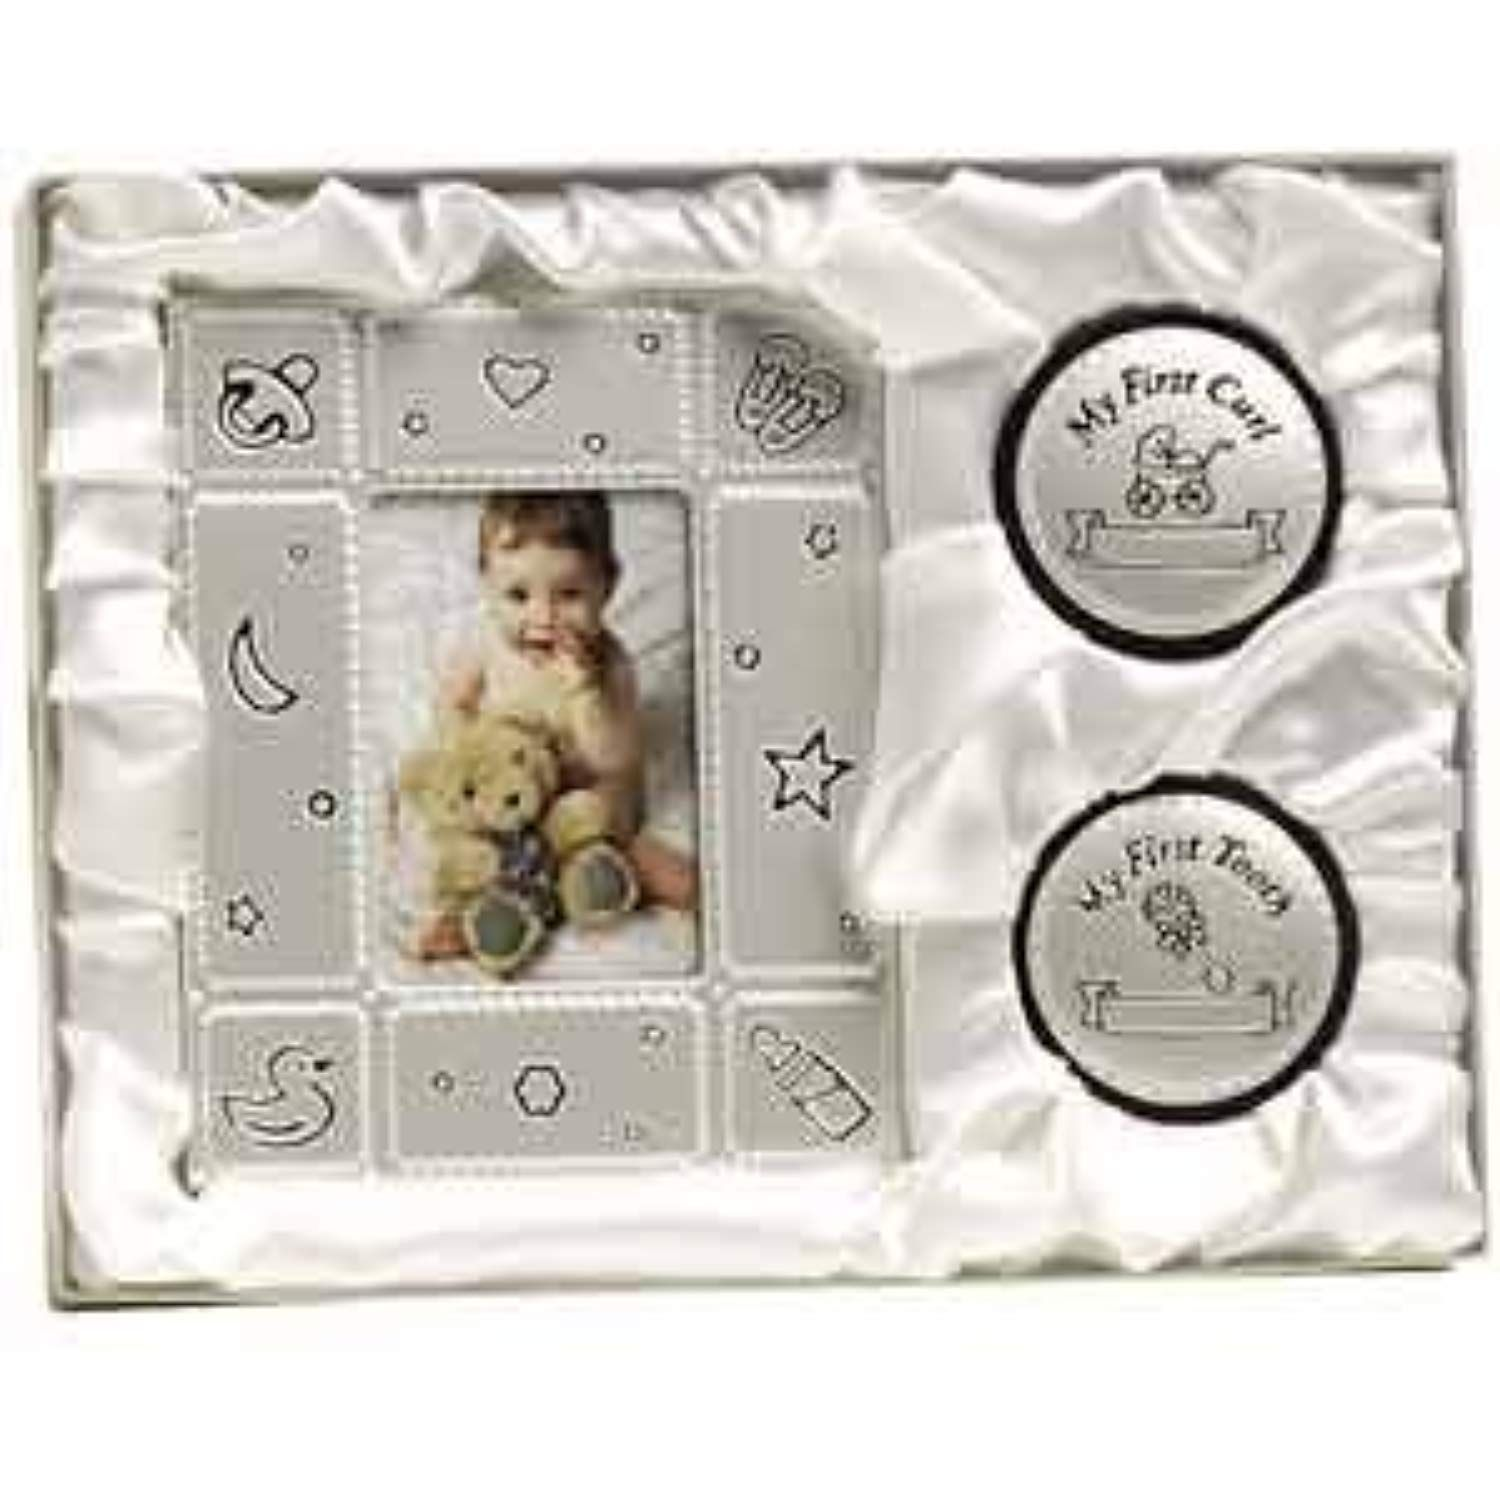 BABY PHOTO FRAME  MY FIRST CURL TOOTH BOX GIFT SET BIRTH SHOWER CHRISTENING NEW